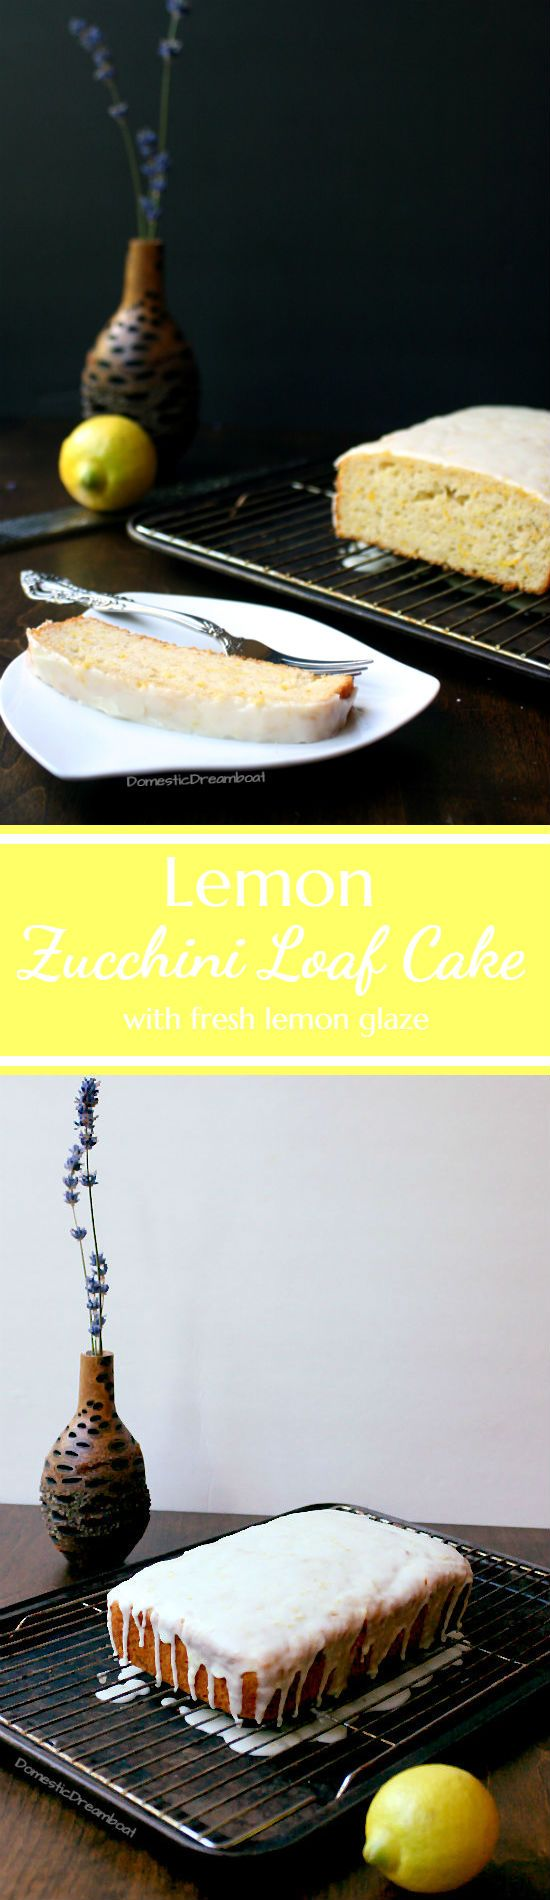 Lemon Zucchini Loaf Cake is a great way to use extra zucchini - it's a tasty dessert with a fresh lemon flavor and you can't even tell the zucchini is there!